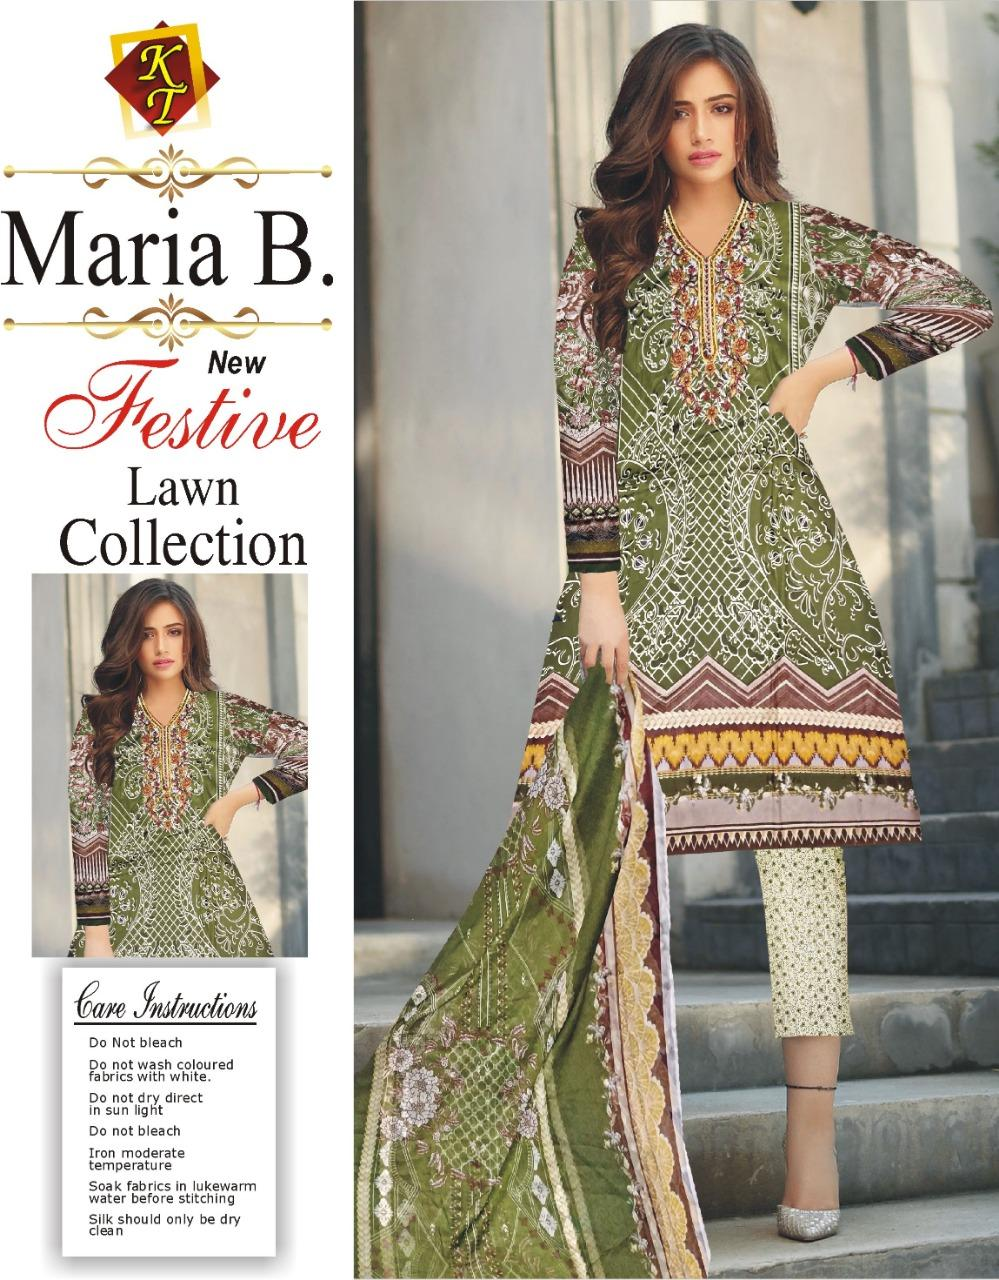 e53f045df0 Lawn Collection Unstitched Lawn Collection 2019 / Embroidered Lawn Shirt  and Trouser /3piece suit /